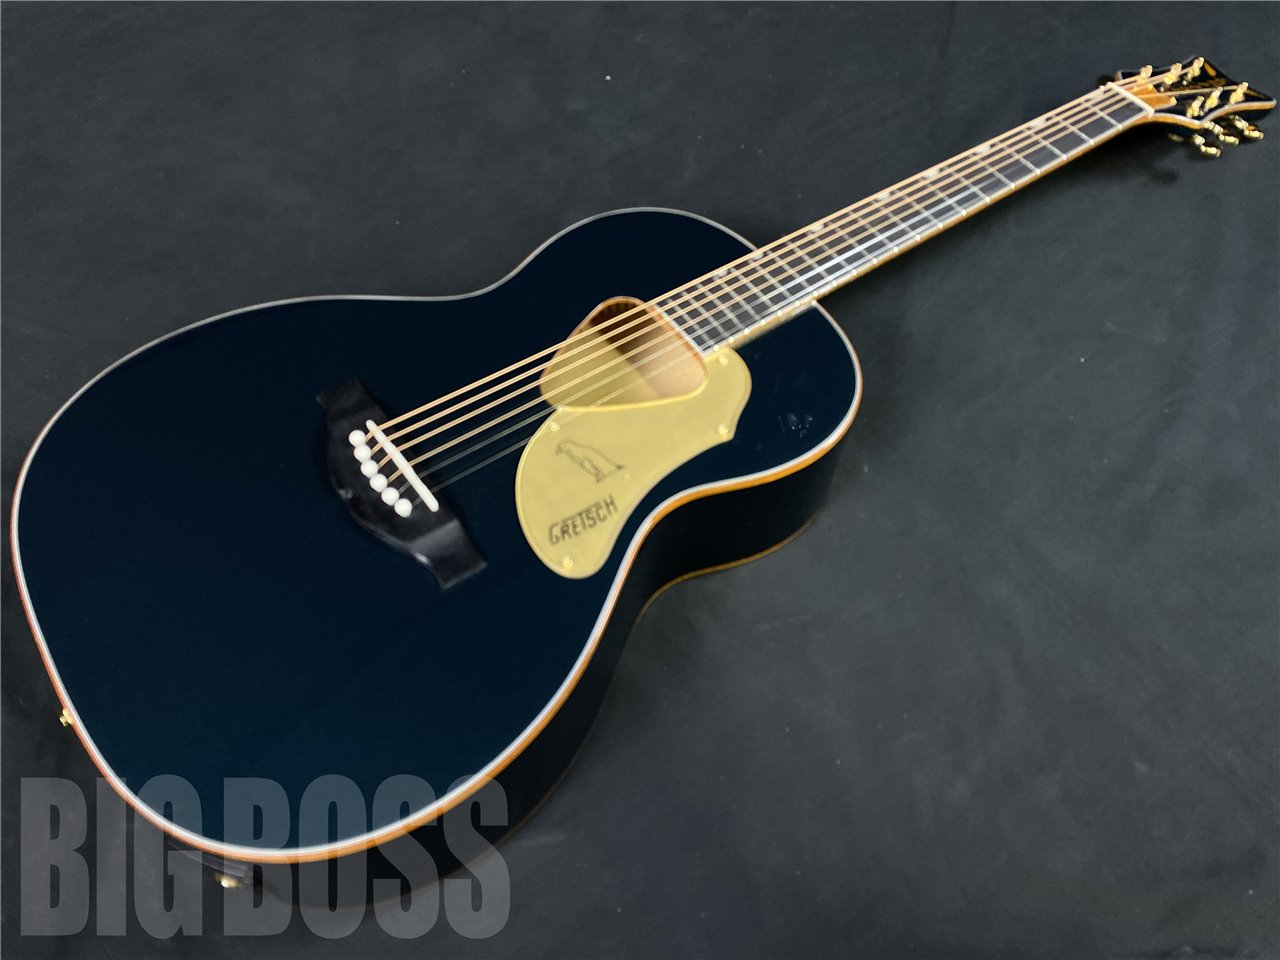 Gretsch(グレッチ) G5021E-LTD Limited Edition Rancher™ Penguin™ (エレアコ)